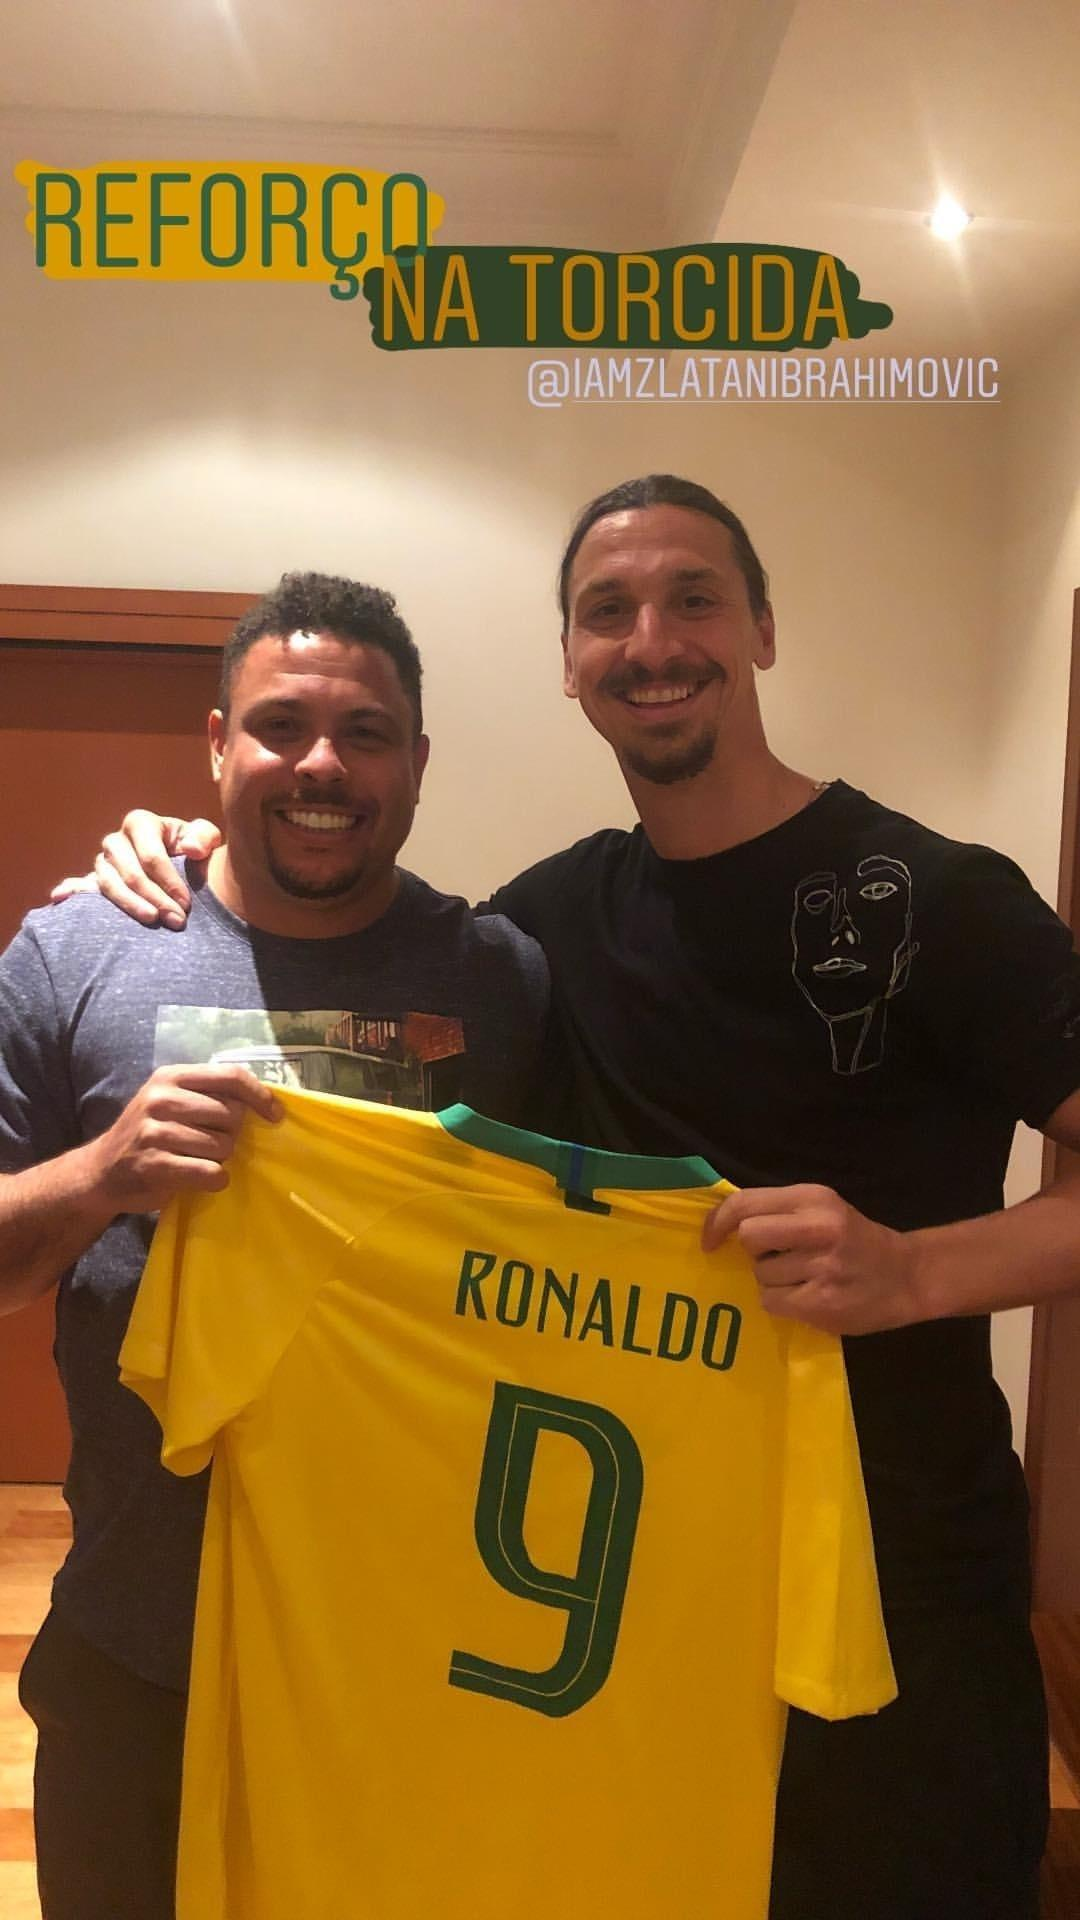 Ronaldo presenteia Ibrahimovic com camisa do Brasil